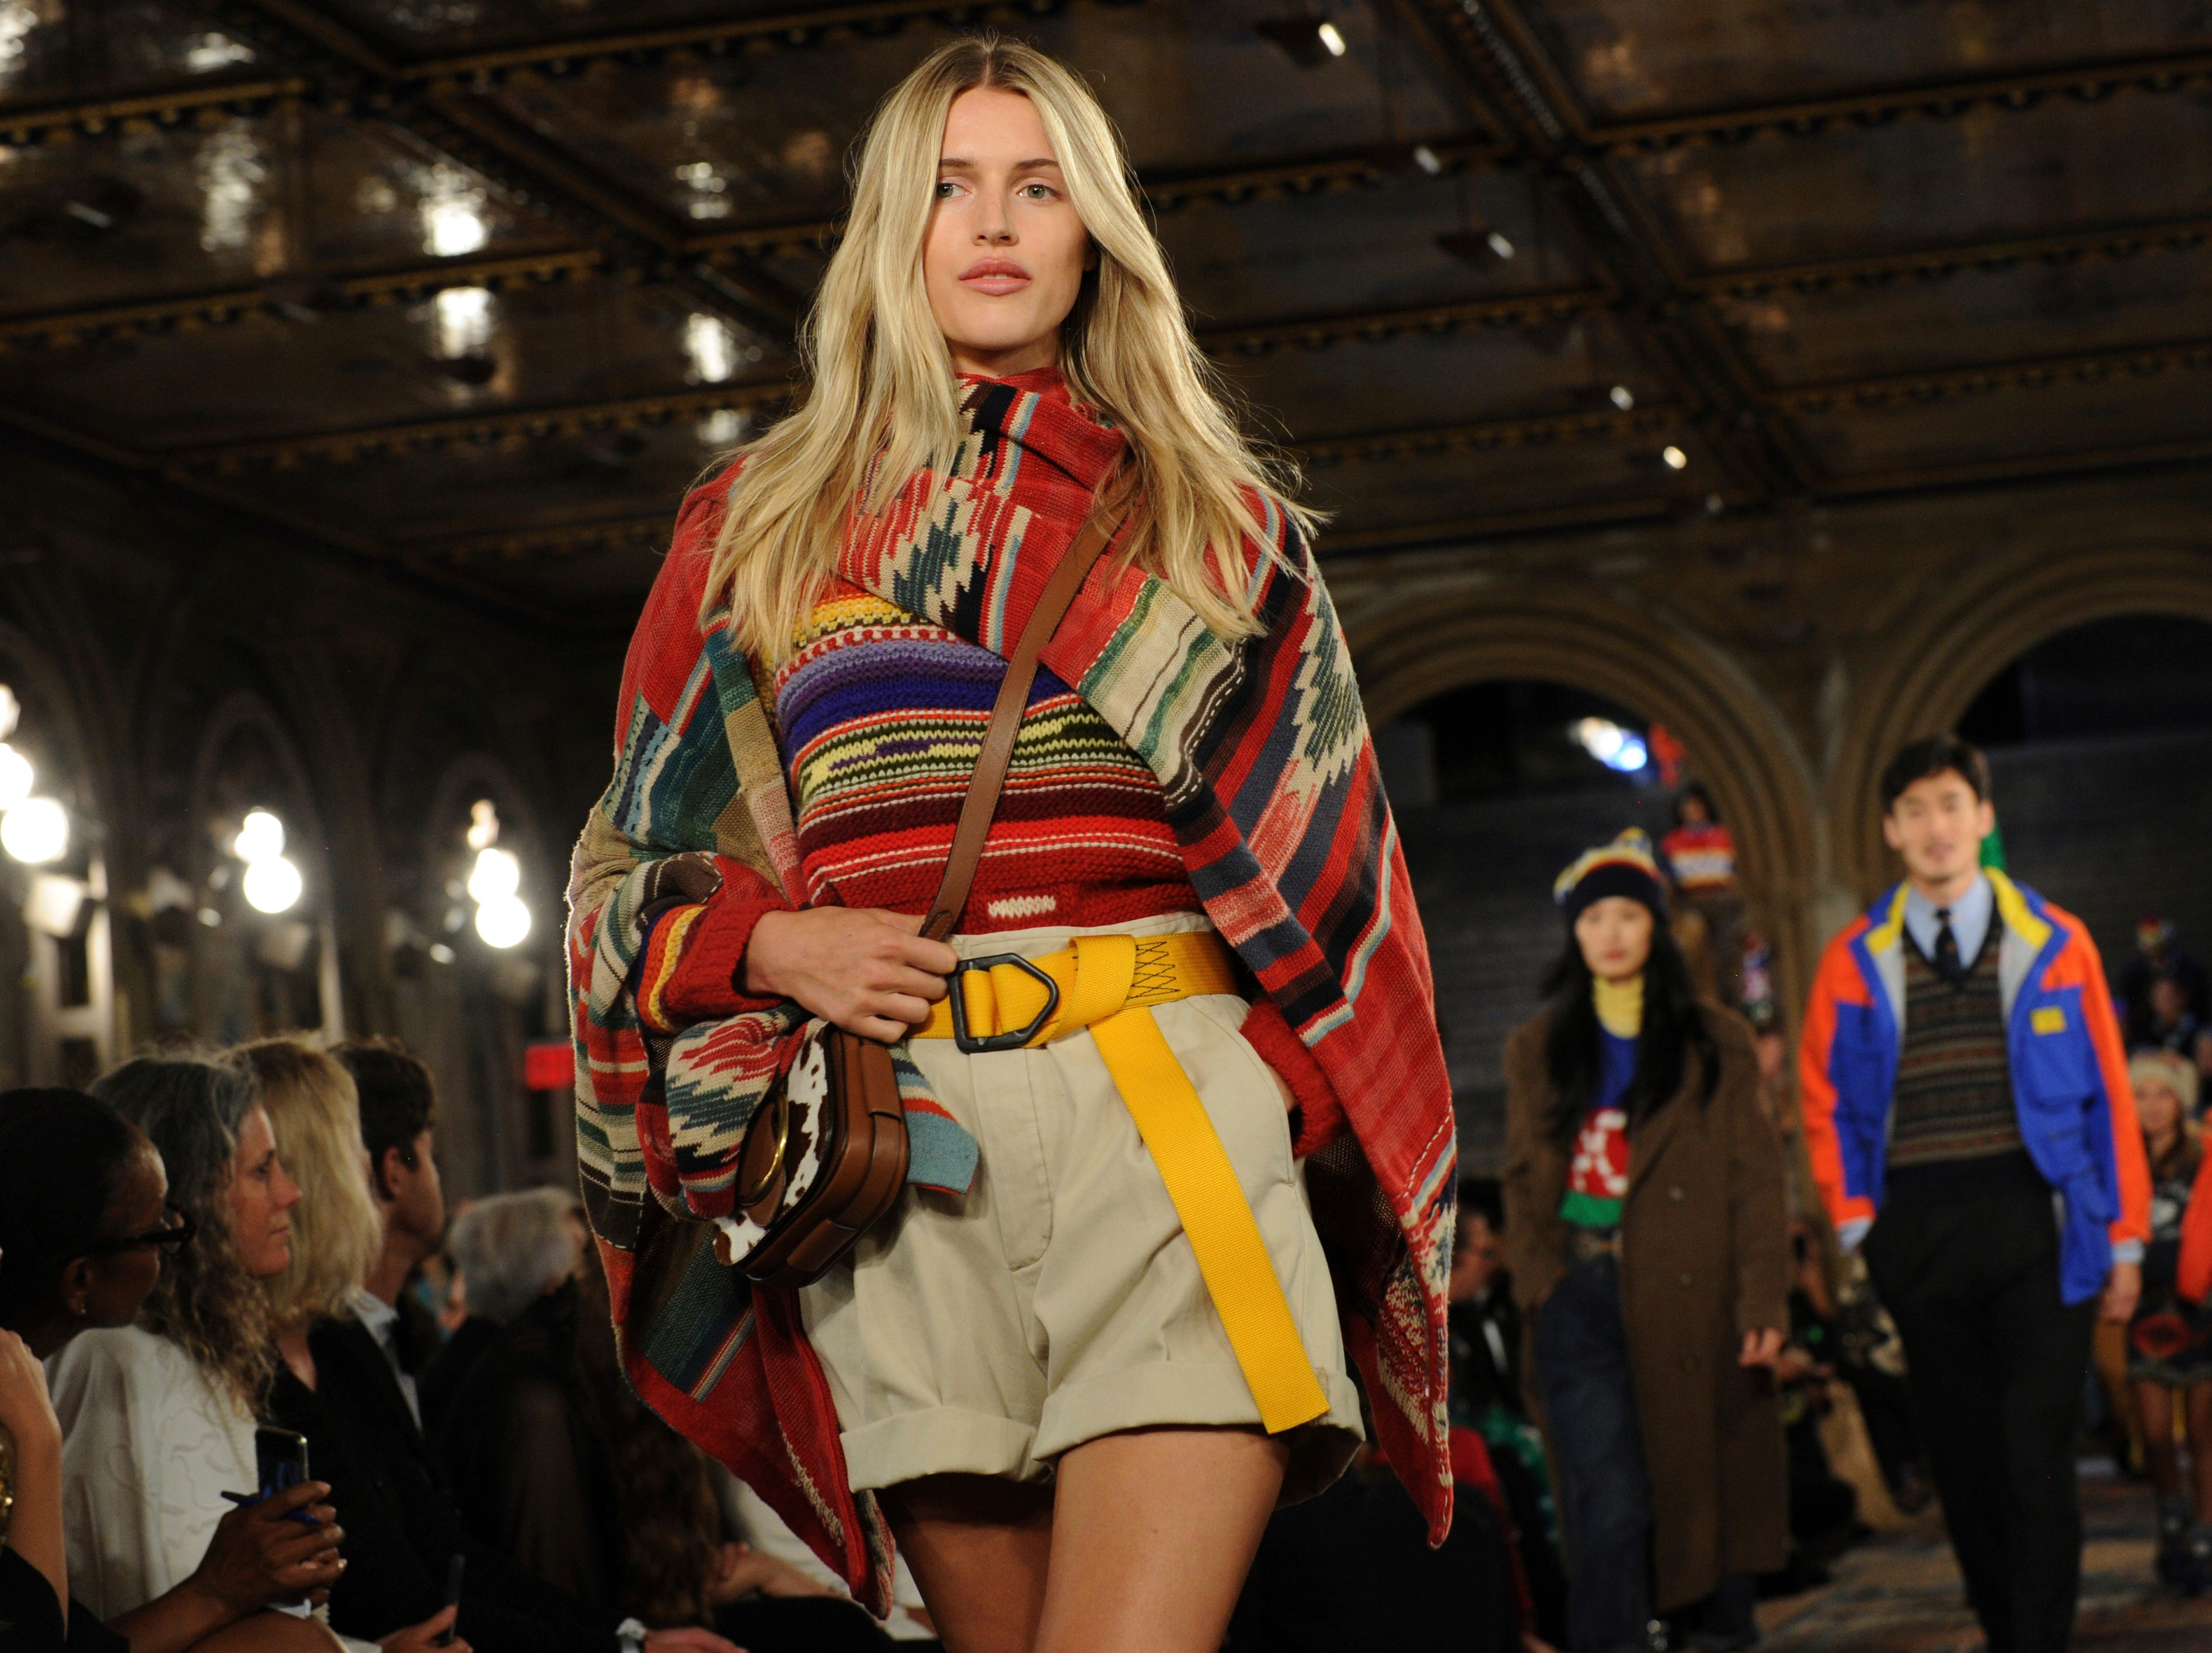 Models walk the runway at the Ralph Lauren 50th Anniversary Fashion Show during New York Fashion Week, Friday, Sept. 7, 2018. (AP Photo/Diane Bondareff) ORG XMIT: NYDB135